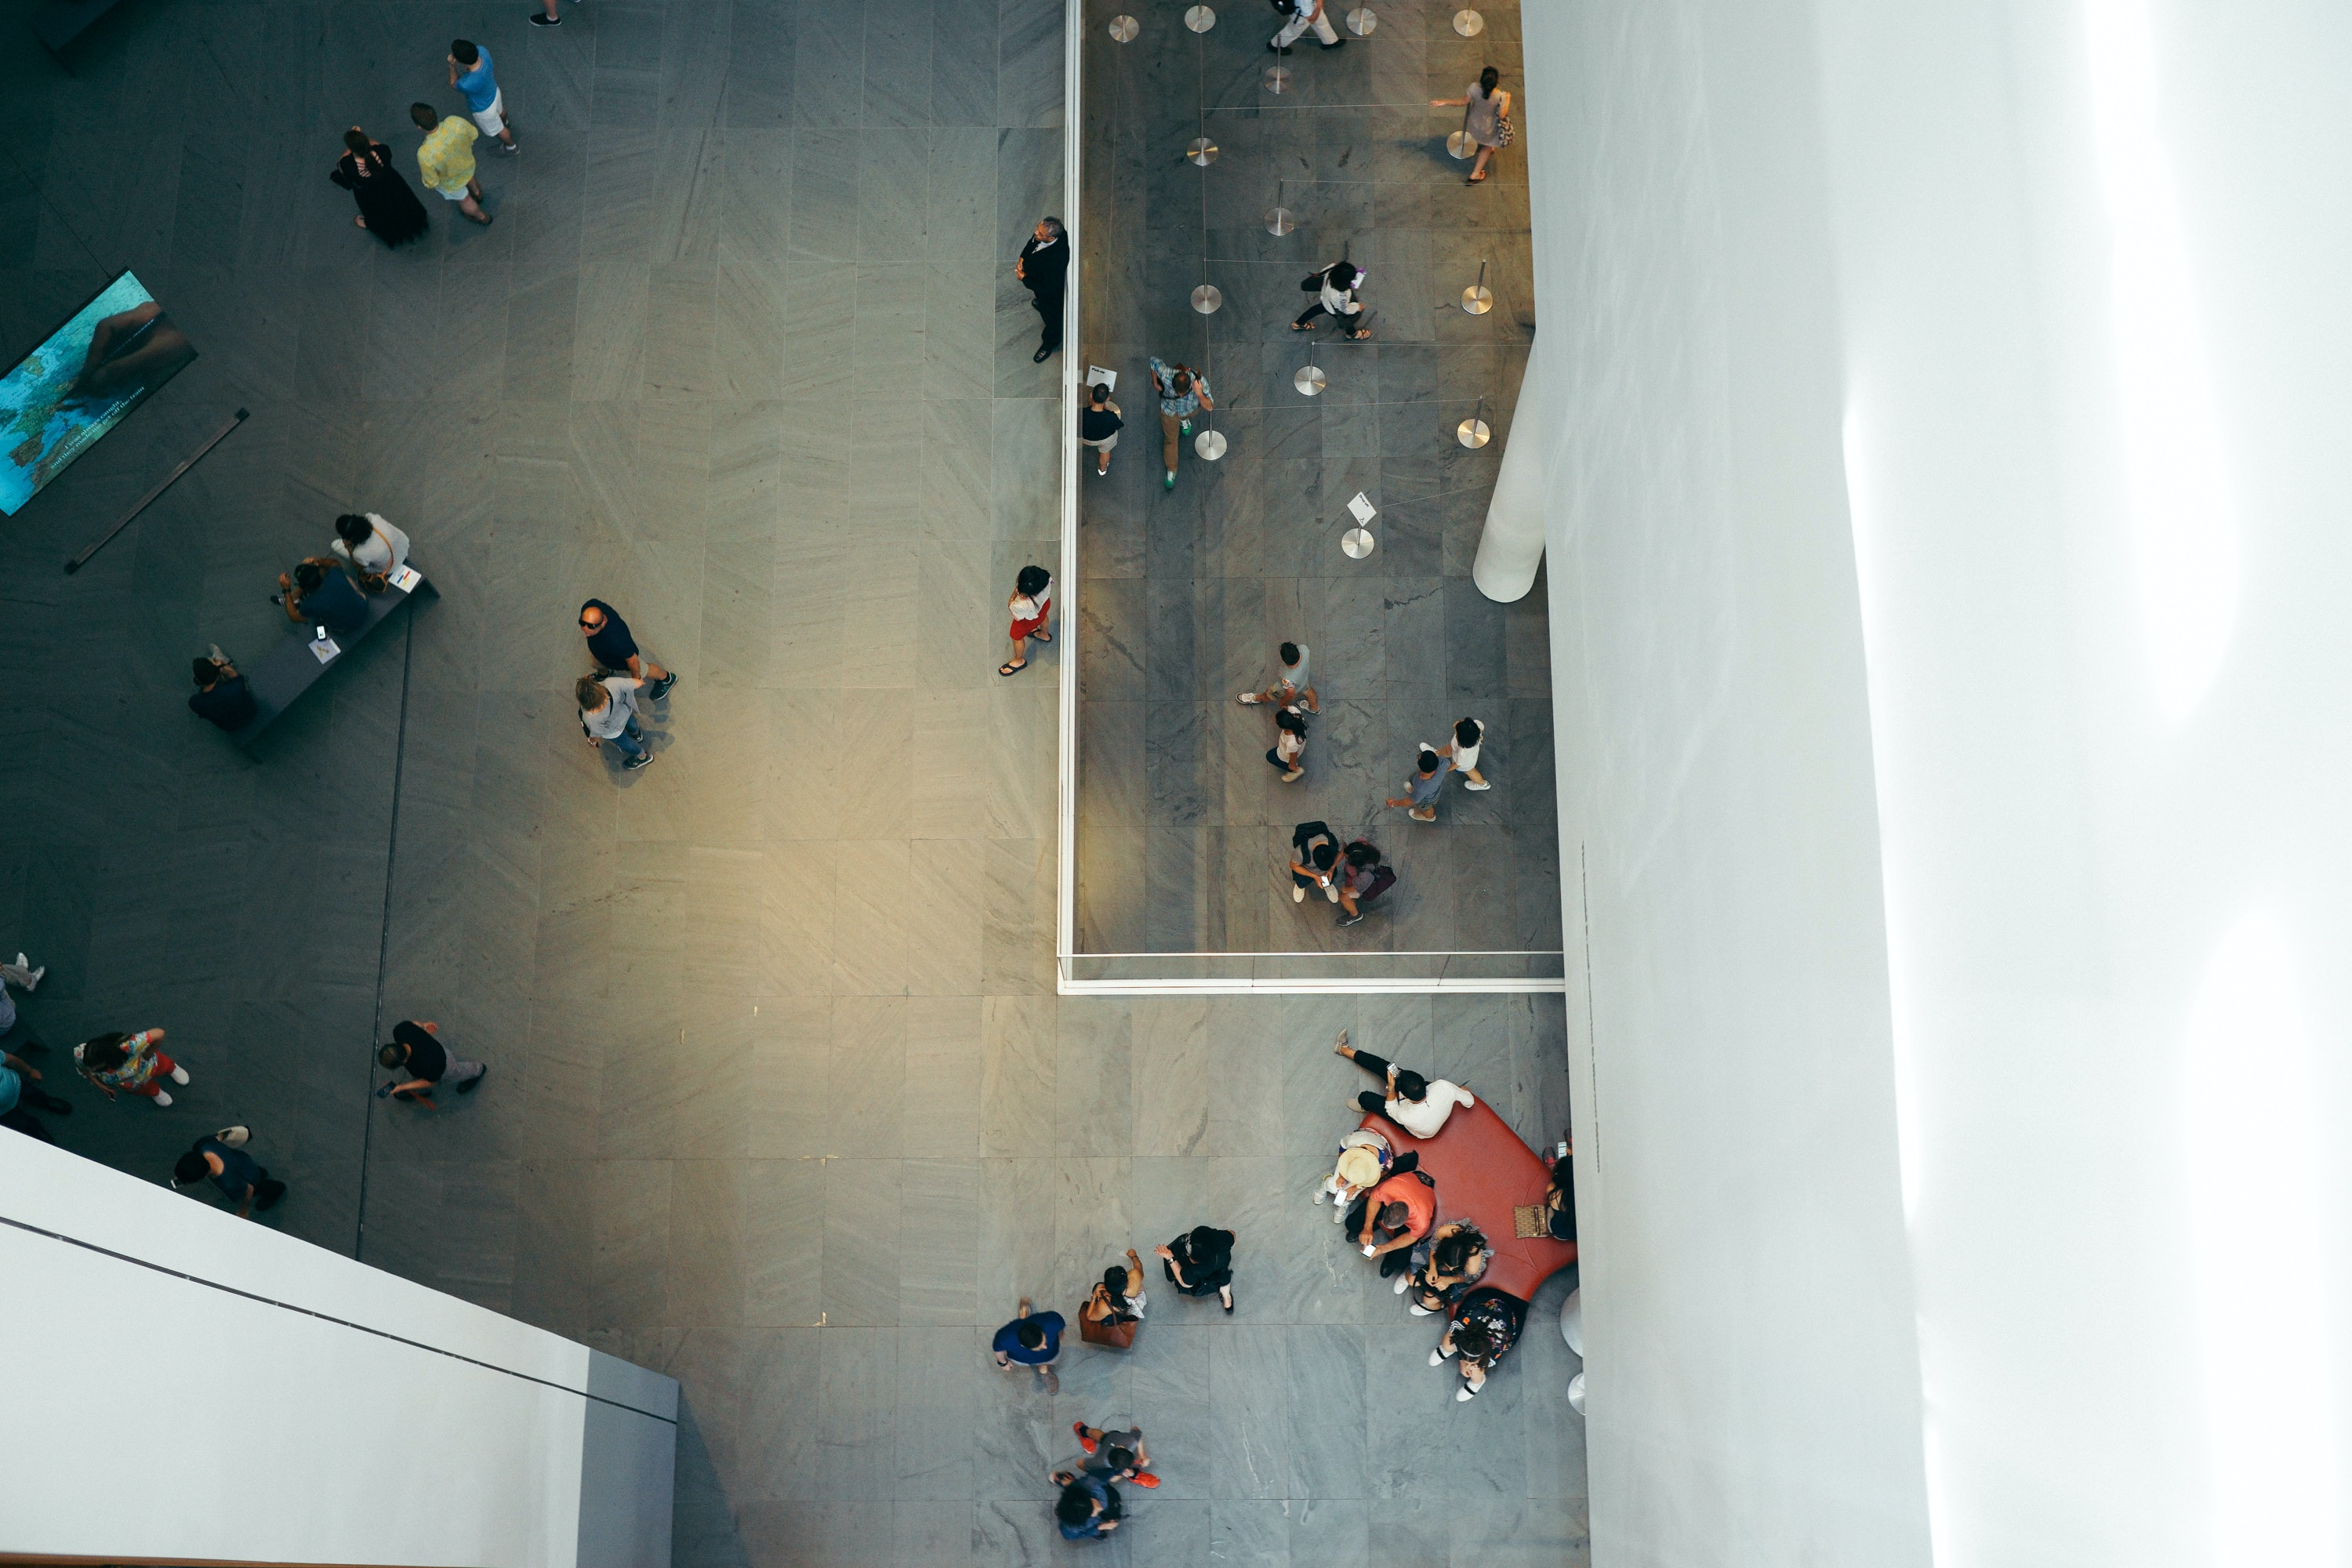 Overview of people walking around The Museum of Modern Art